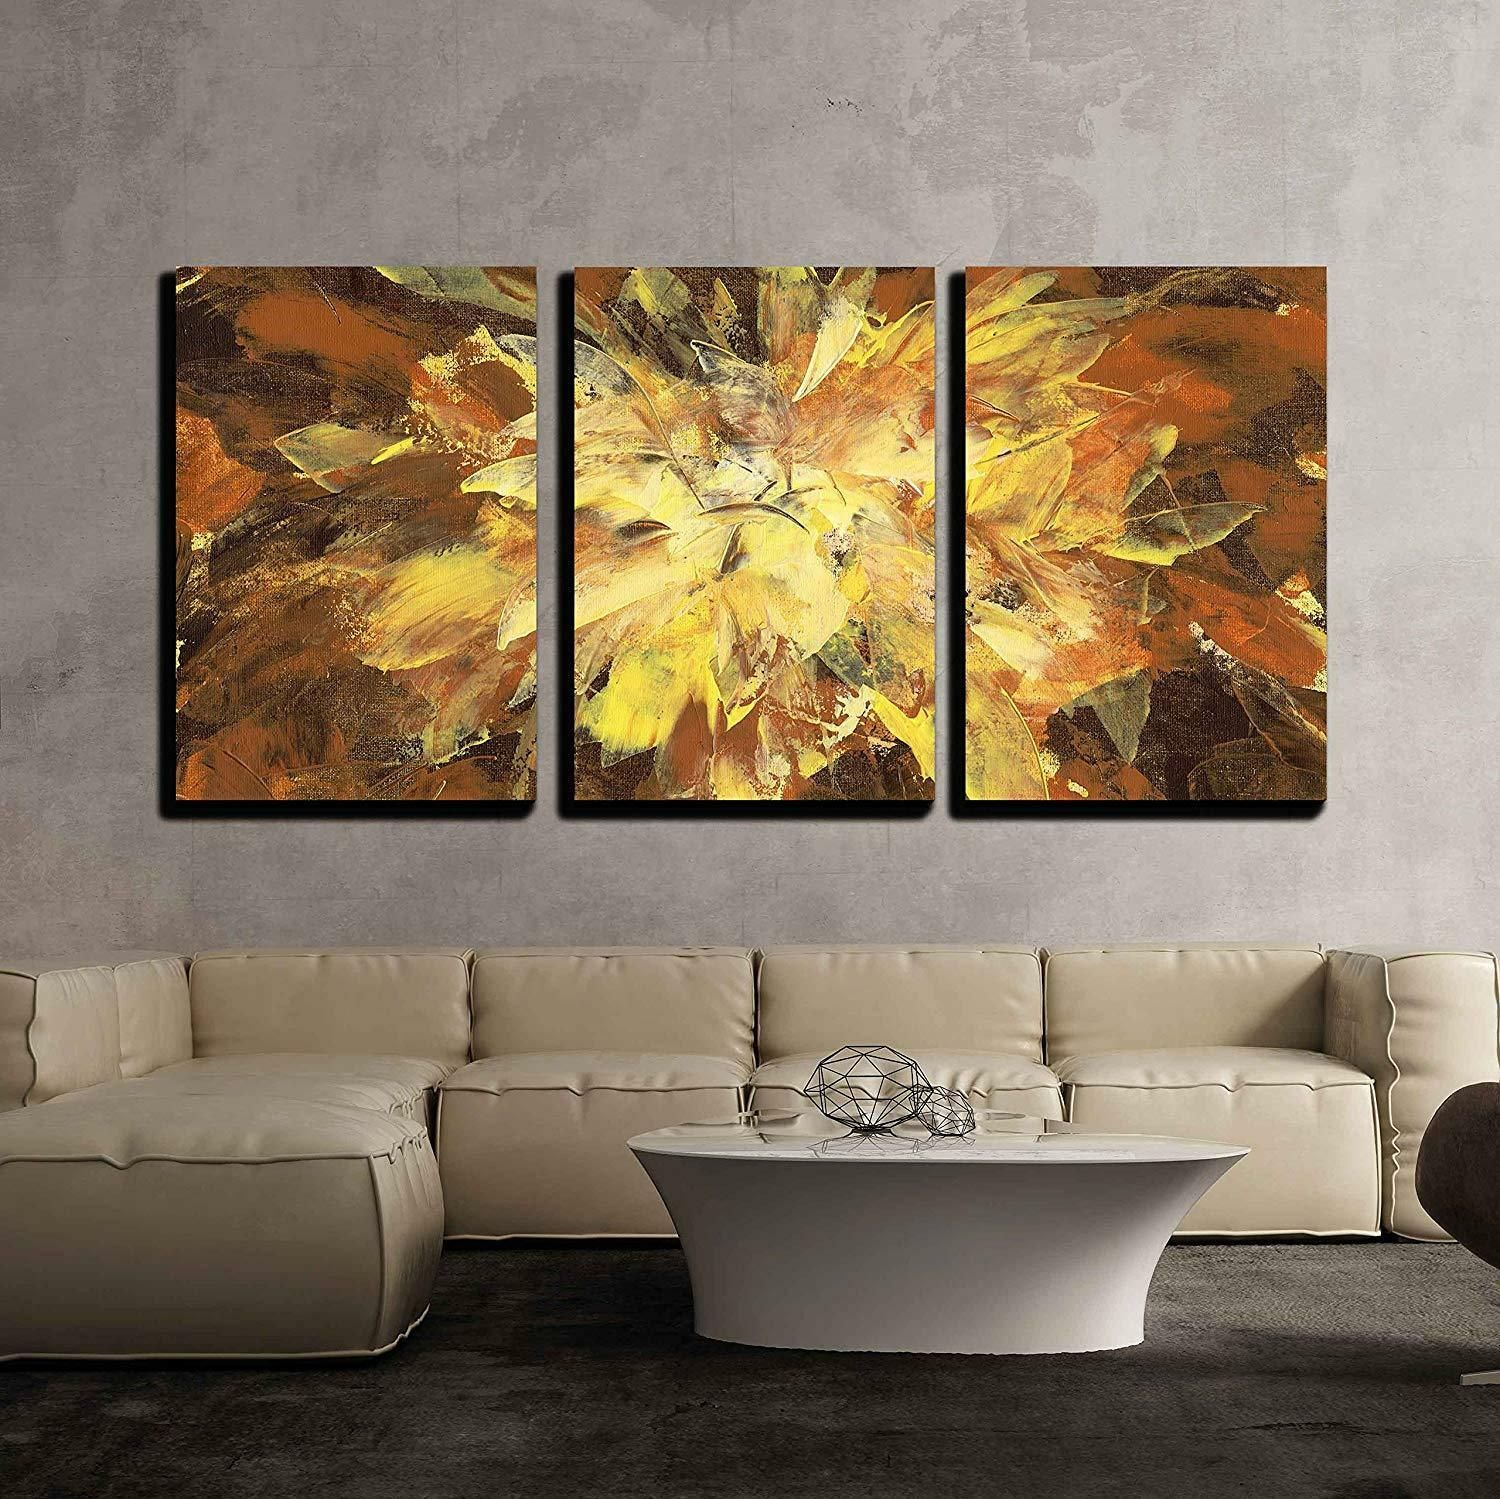 Wall26 Abstract Backround Handmade Oil Painting Cvs 24 X36 X3 Panels In 2020 Wall Canvas Painting Abstract Canvas Wall Art Cheap Canvas Art